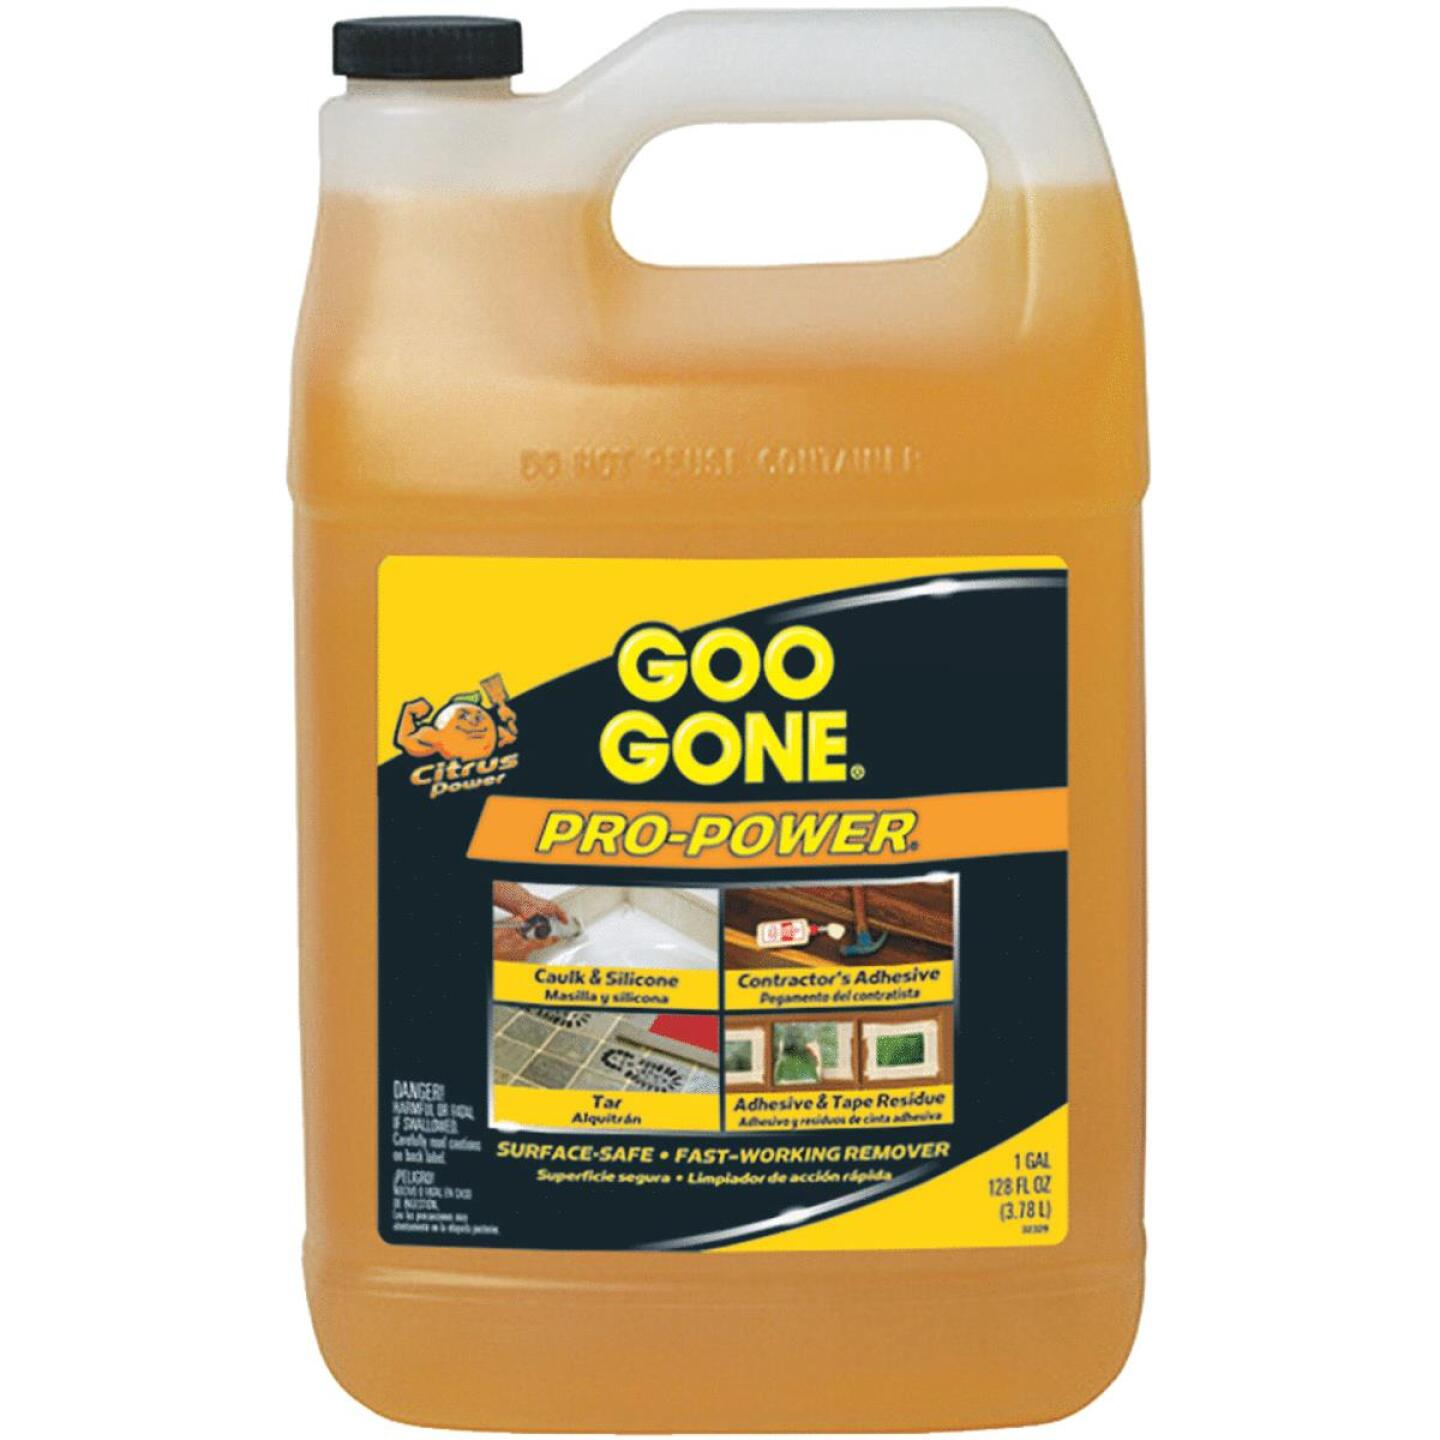 Goo Gone 1 Gal. Pro-Power Adhesive Remover Image 358